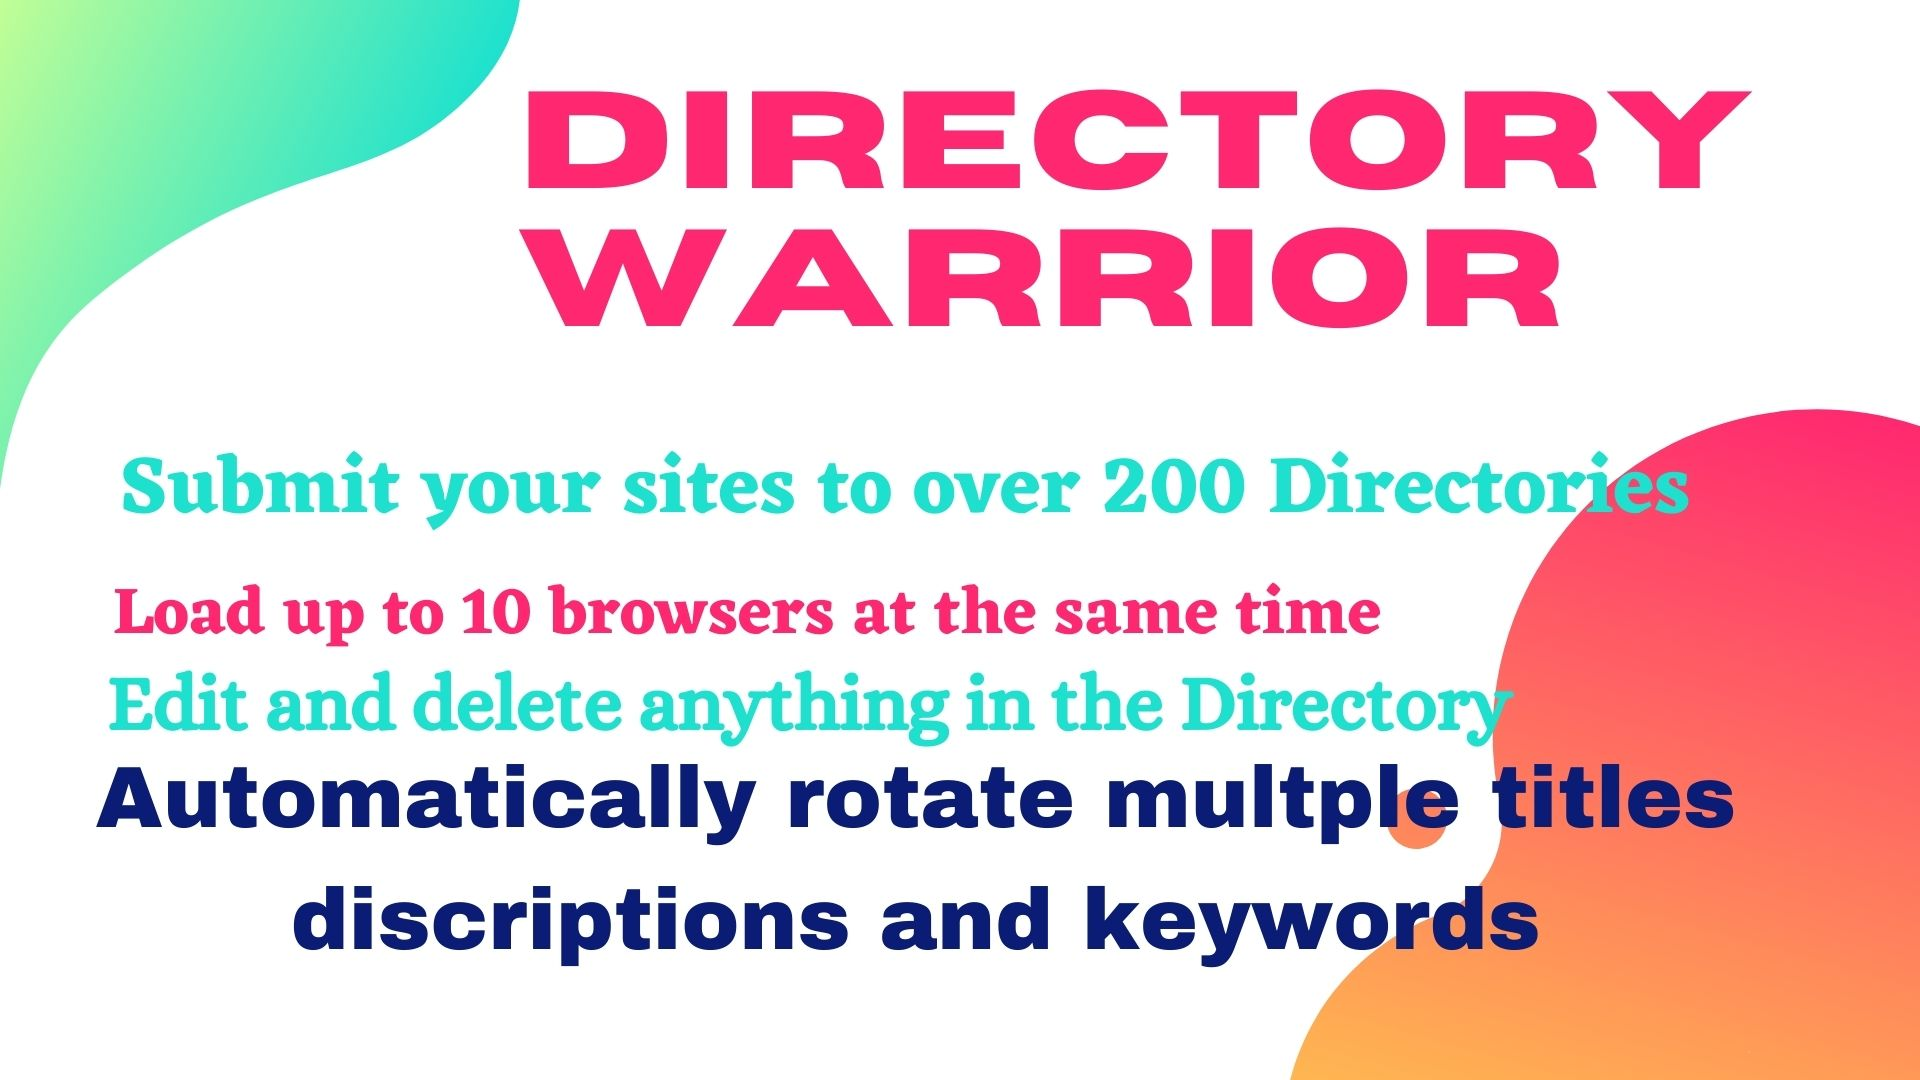 Post Your sites to over 200 Directories and automatically rotate multiple titles